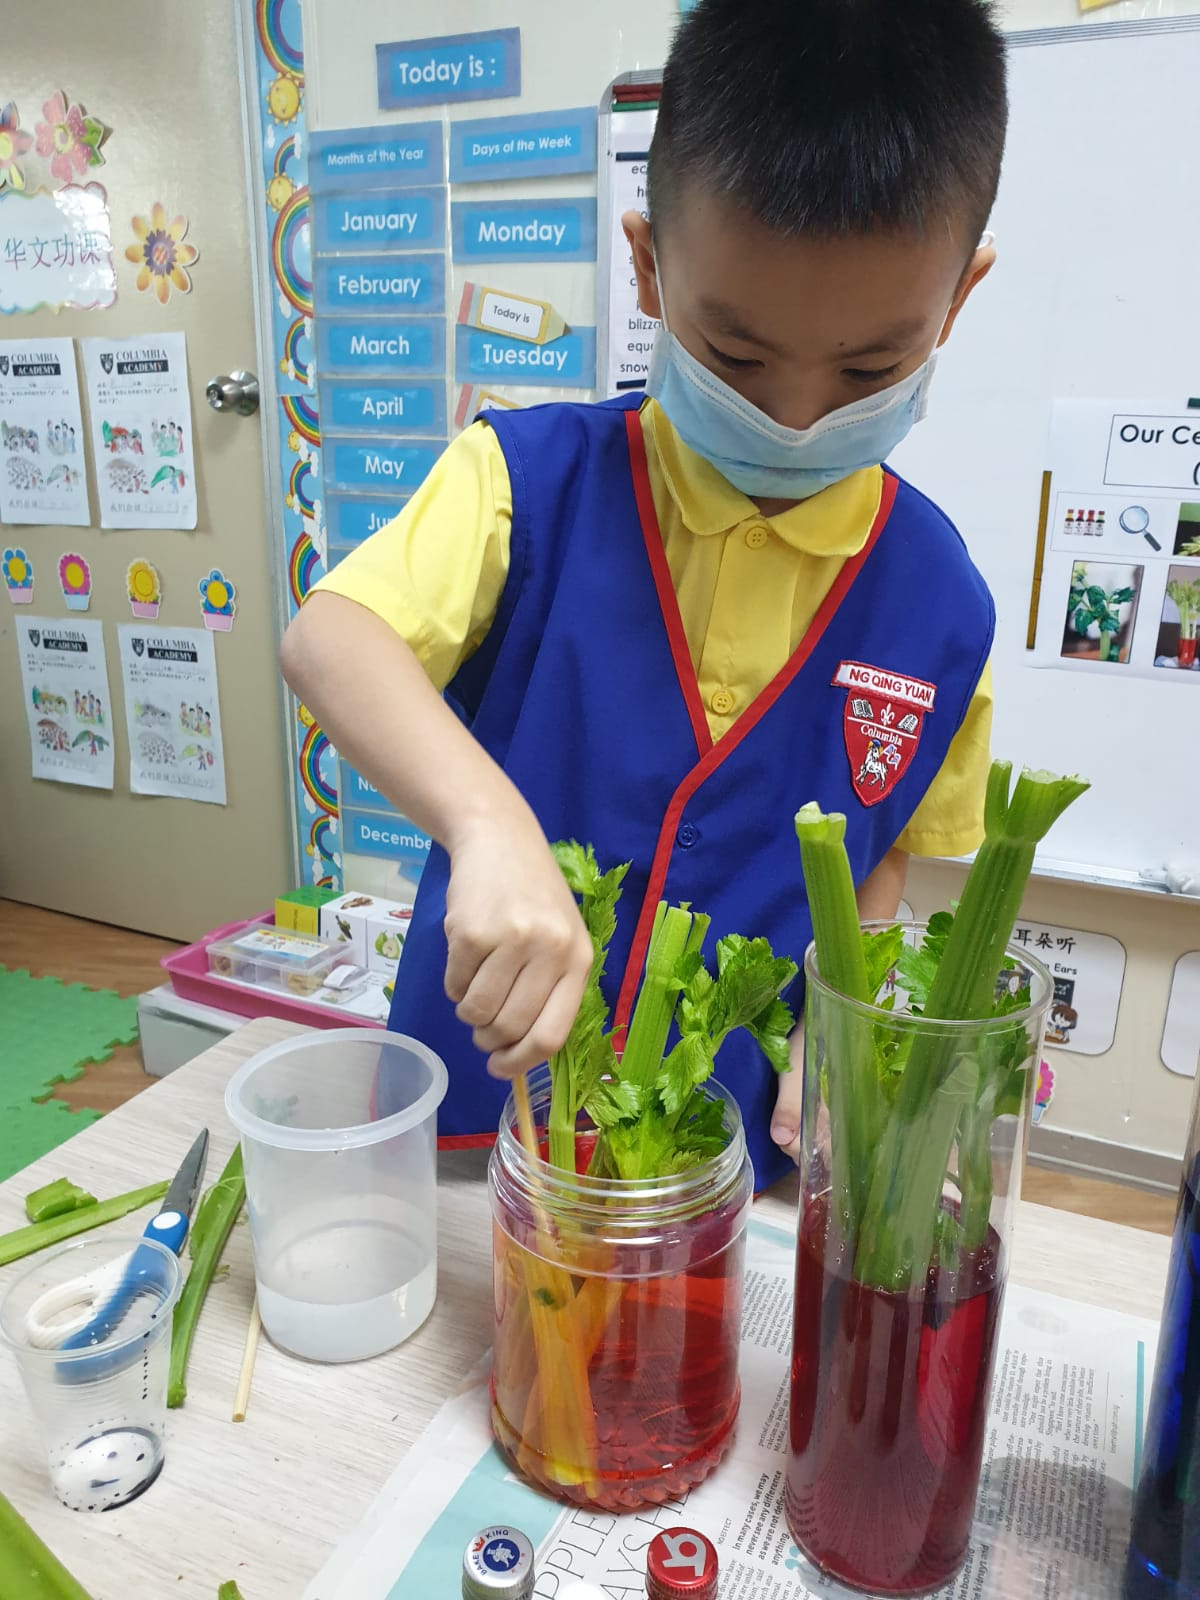 Columbia Preschool at Jurong East